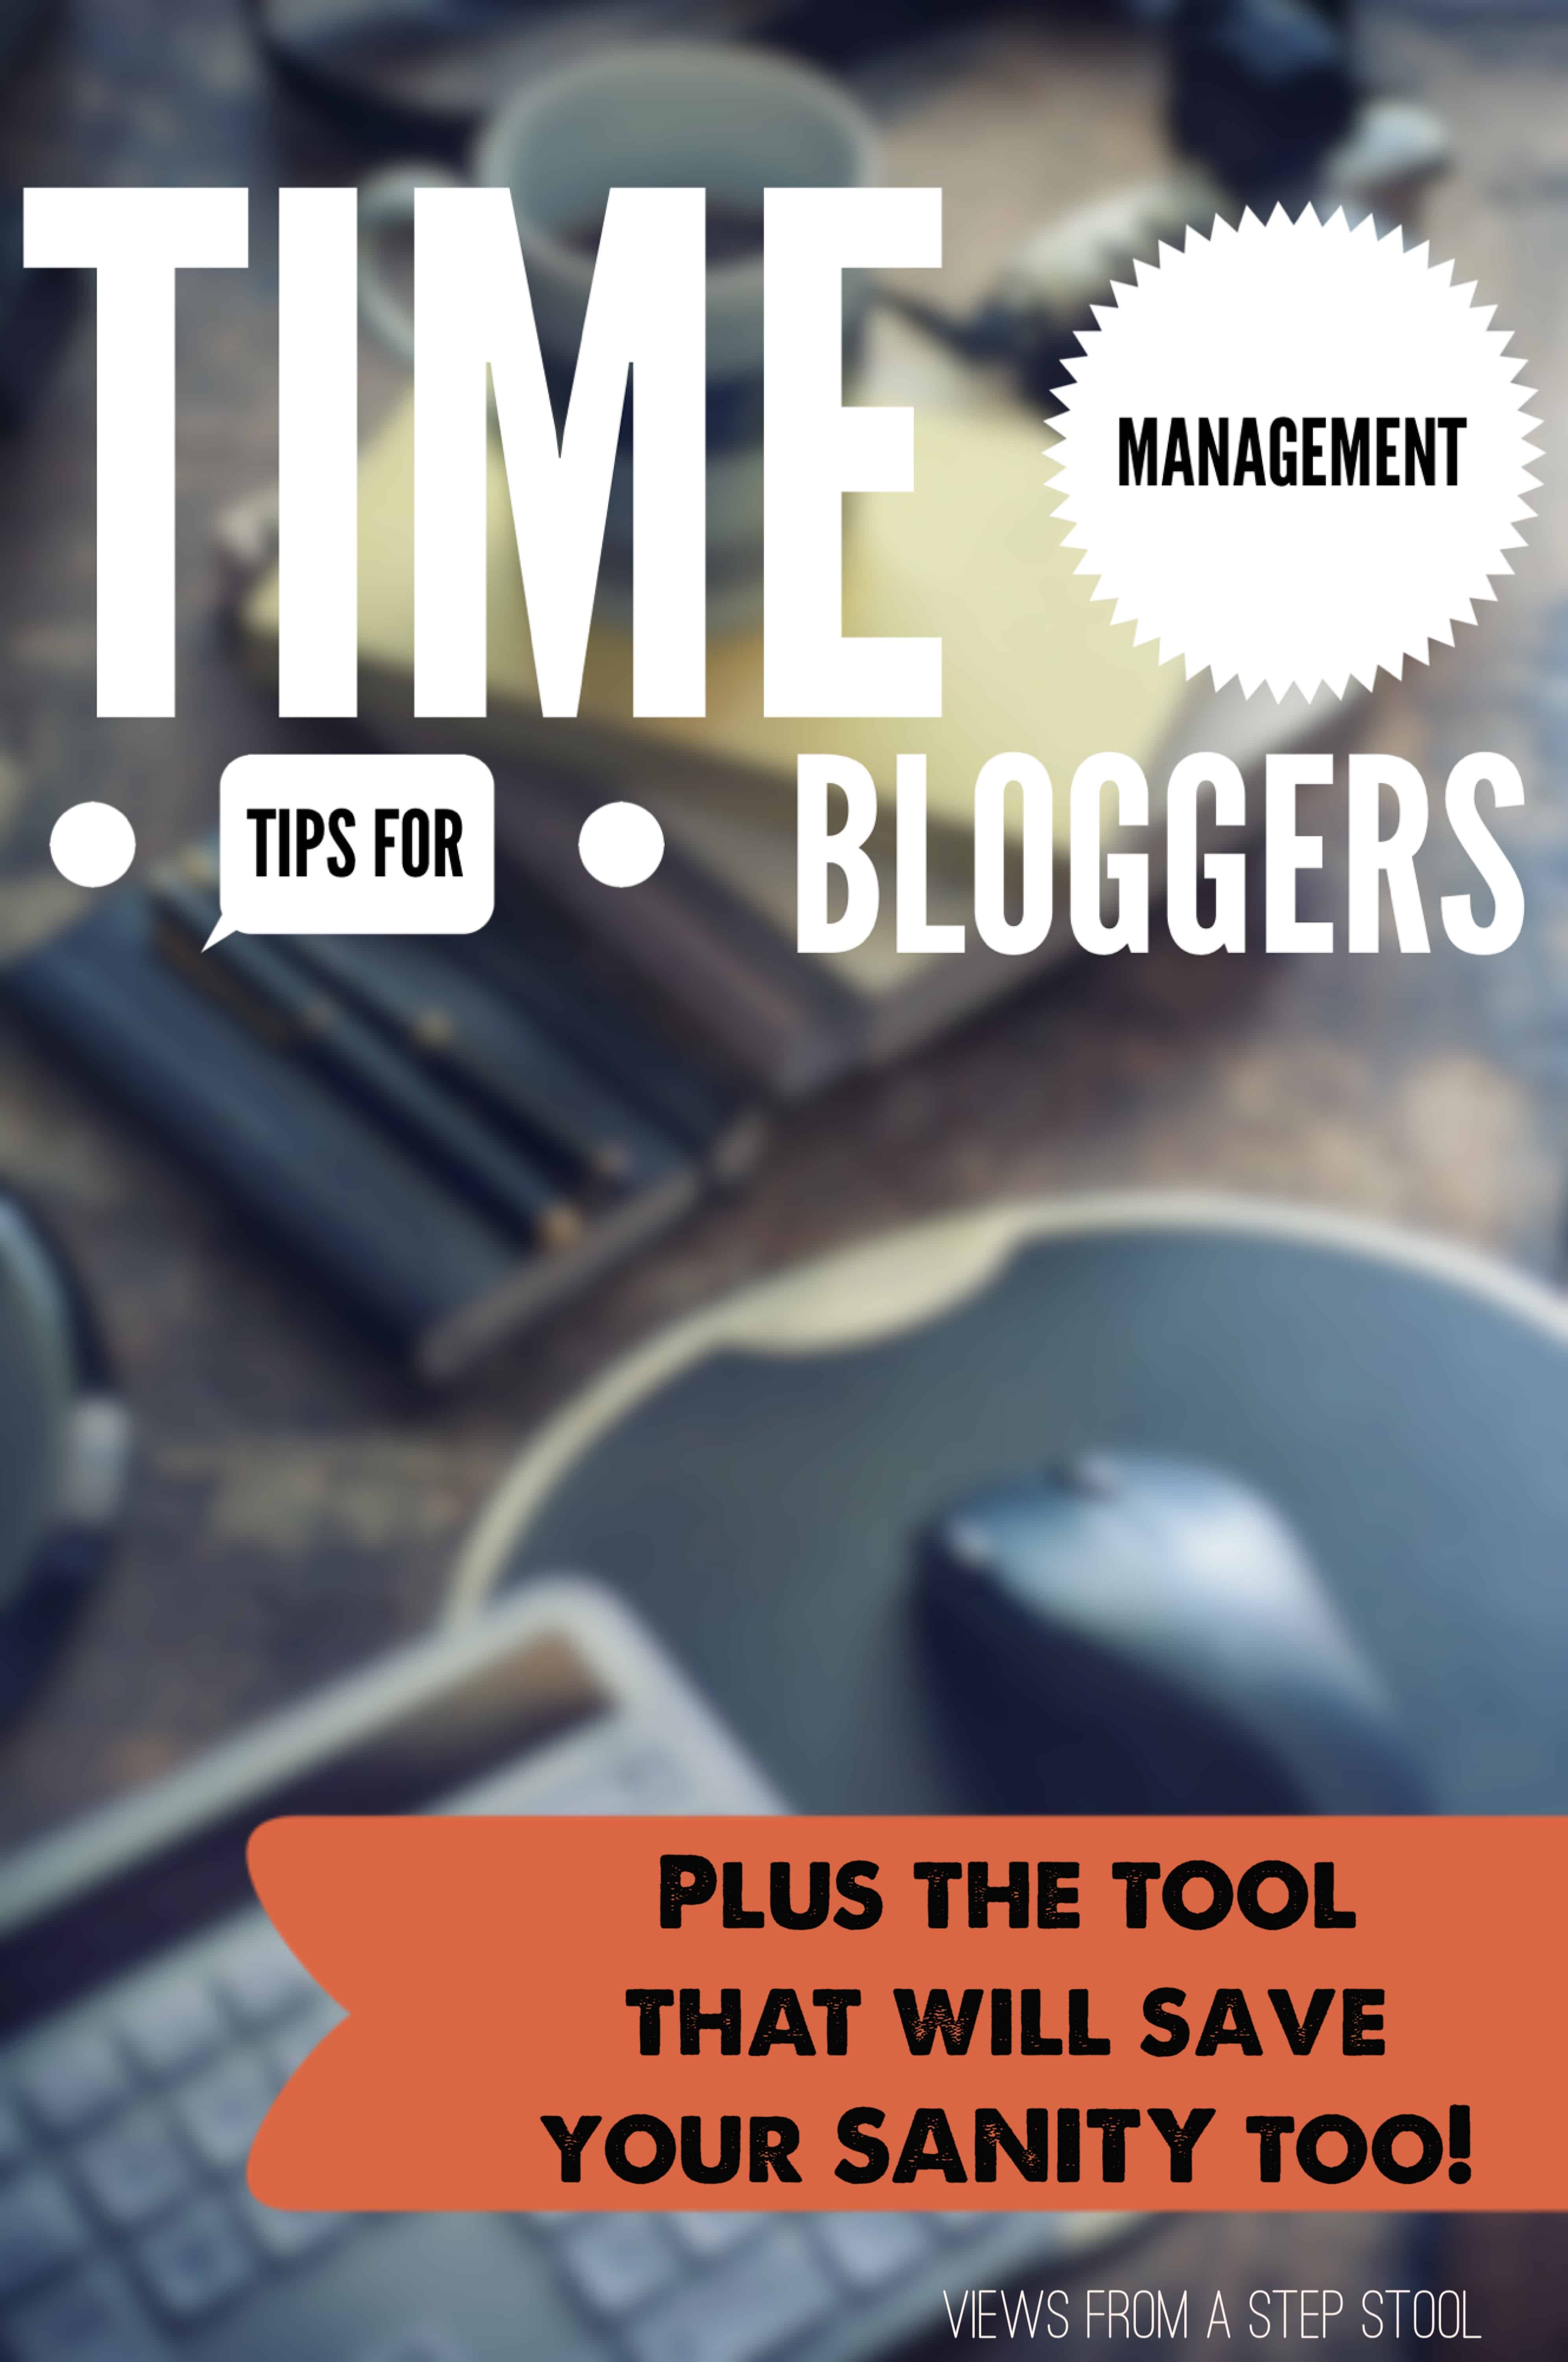 Blogging can be overwhelming. There is SO much that goes into running a successful blog besides the actual writing. Here are a few of my tips for time management and how they have helped me to grow my blog over the last few months. PLUS, my FAVORITE time-saving tool that saves my sanity too!!